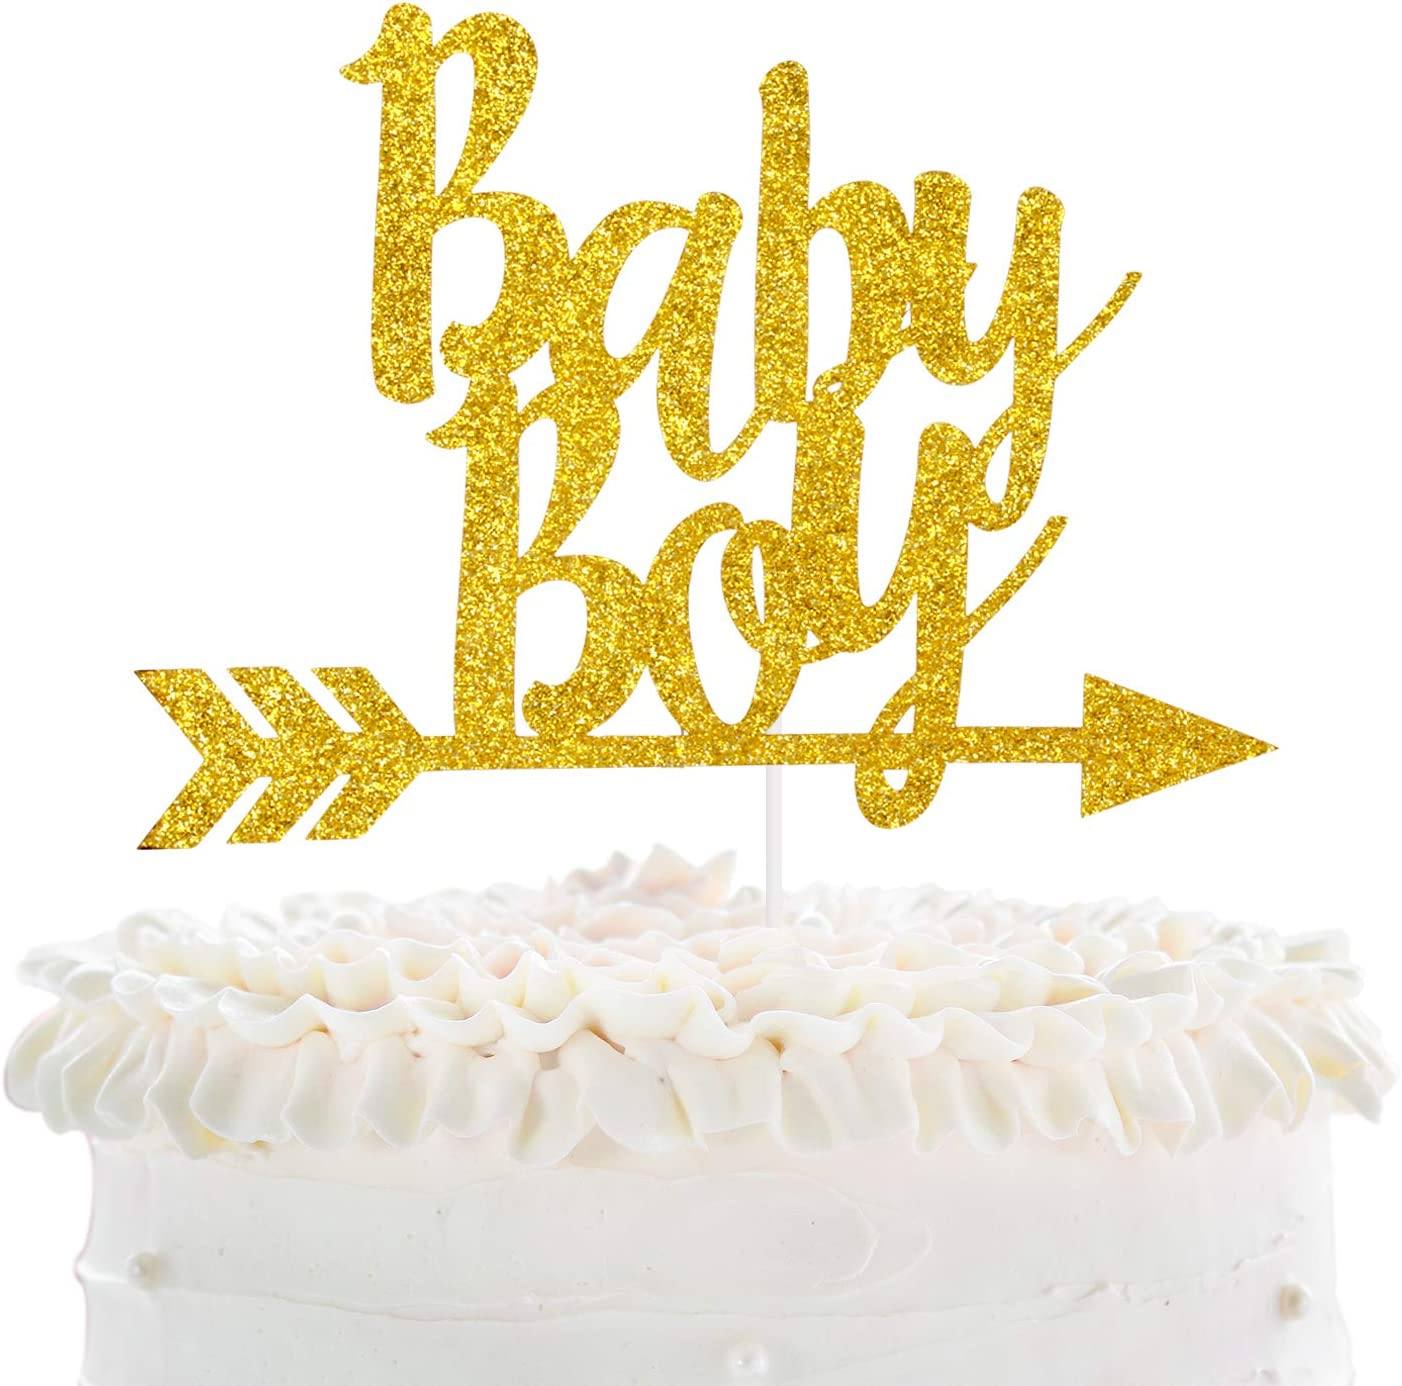 Baby Boy Boho Cake Topper - Baby Shower Party - Newborn Baby First Birthday Glod Glitter Cake Décor - Gender Reveal It's A Boy Tribal Boho Arrow Party Decoration